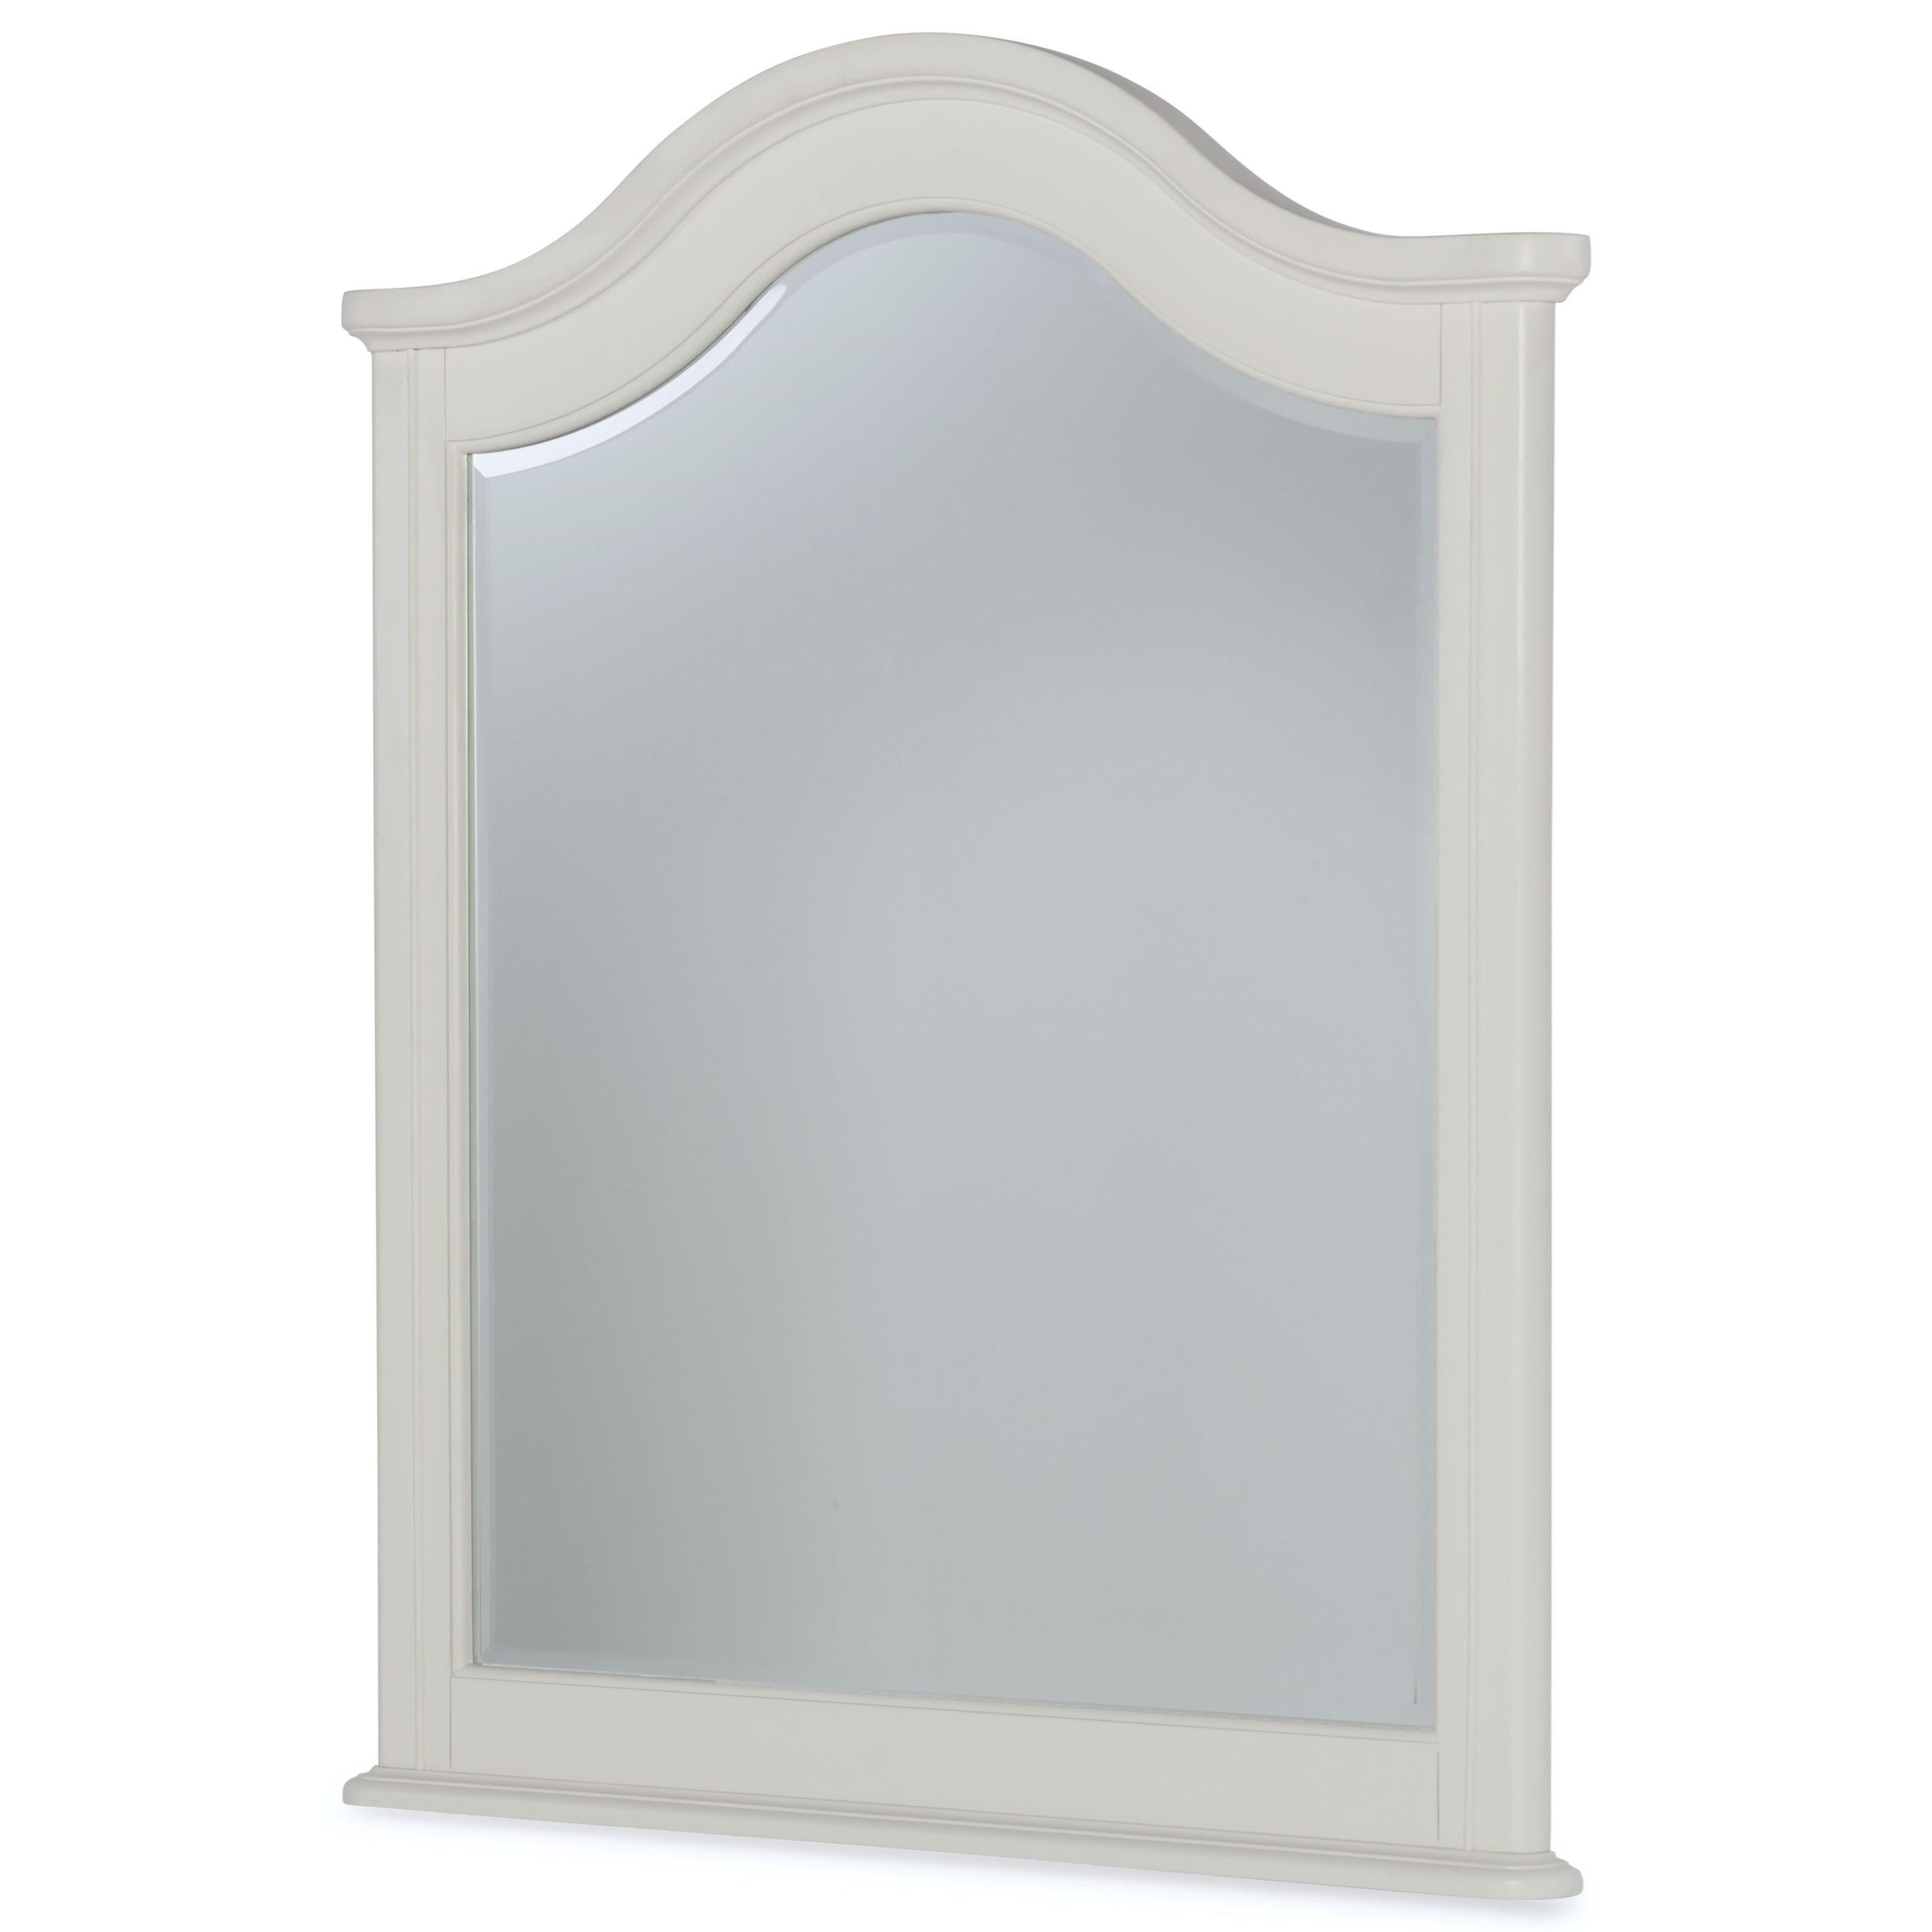 Summerset Vertical Mirror by Legacy Classic Kids at EFO Furniture Outlet